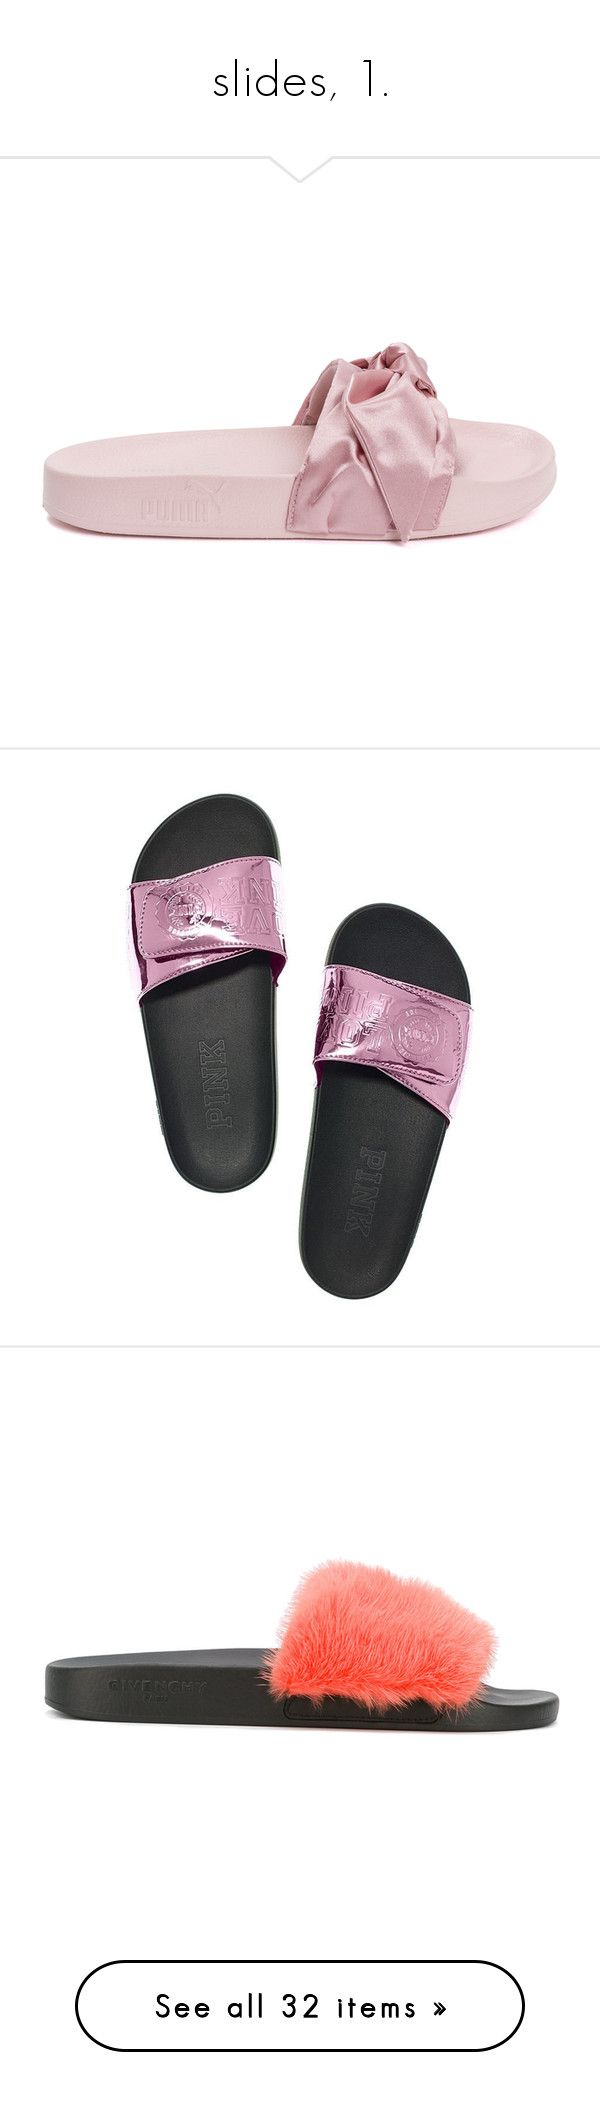 """""""slides, 1."""" by originalimanim ❤ liked on Polyvore featuring shoes, pink, pink shoes, puma footwear, puma shoes, bow shoes, pink bow shoes, victoria's secret, metallic shoes and berry shoes"""